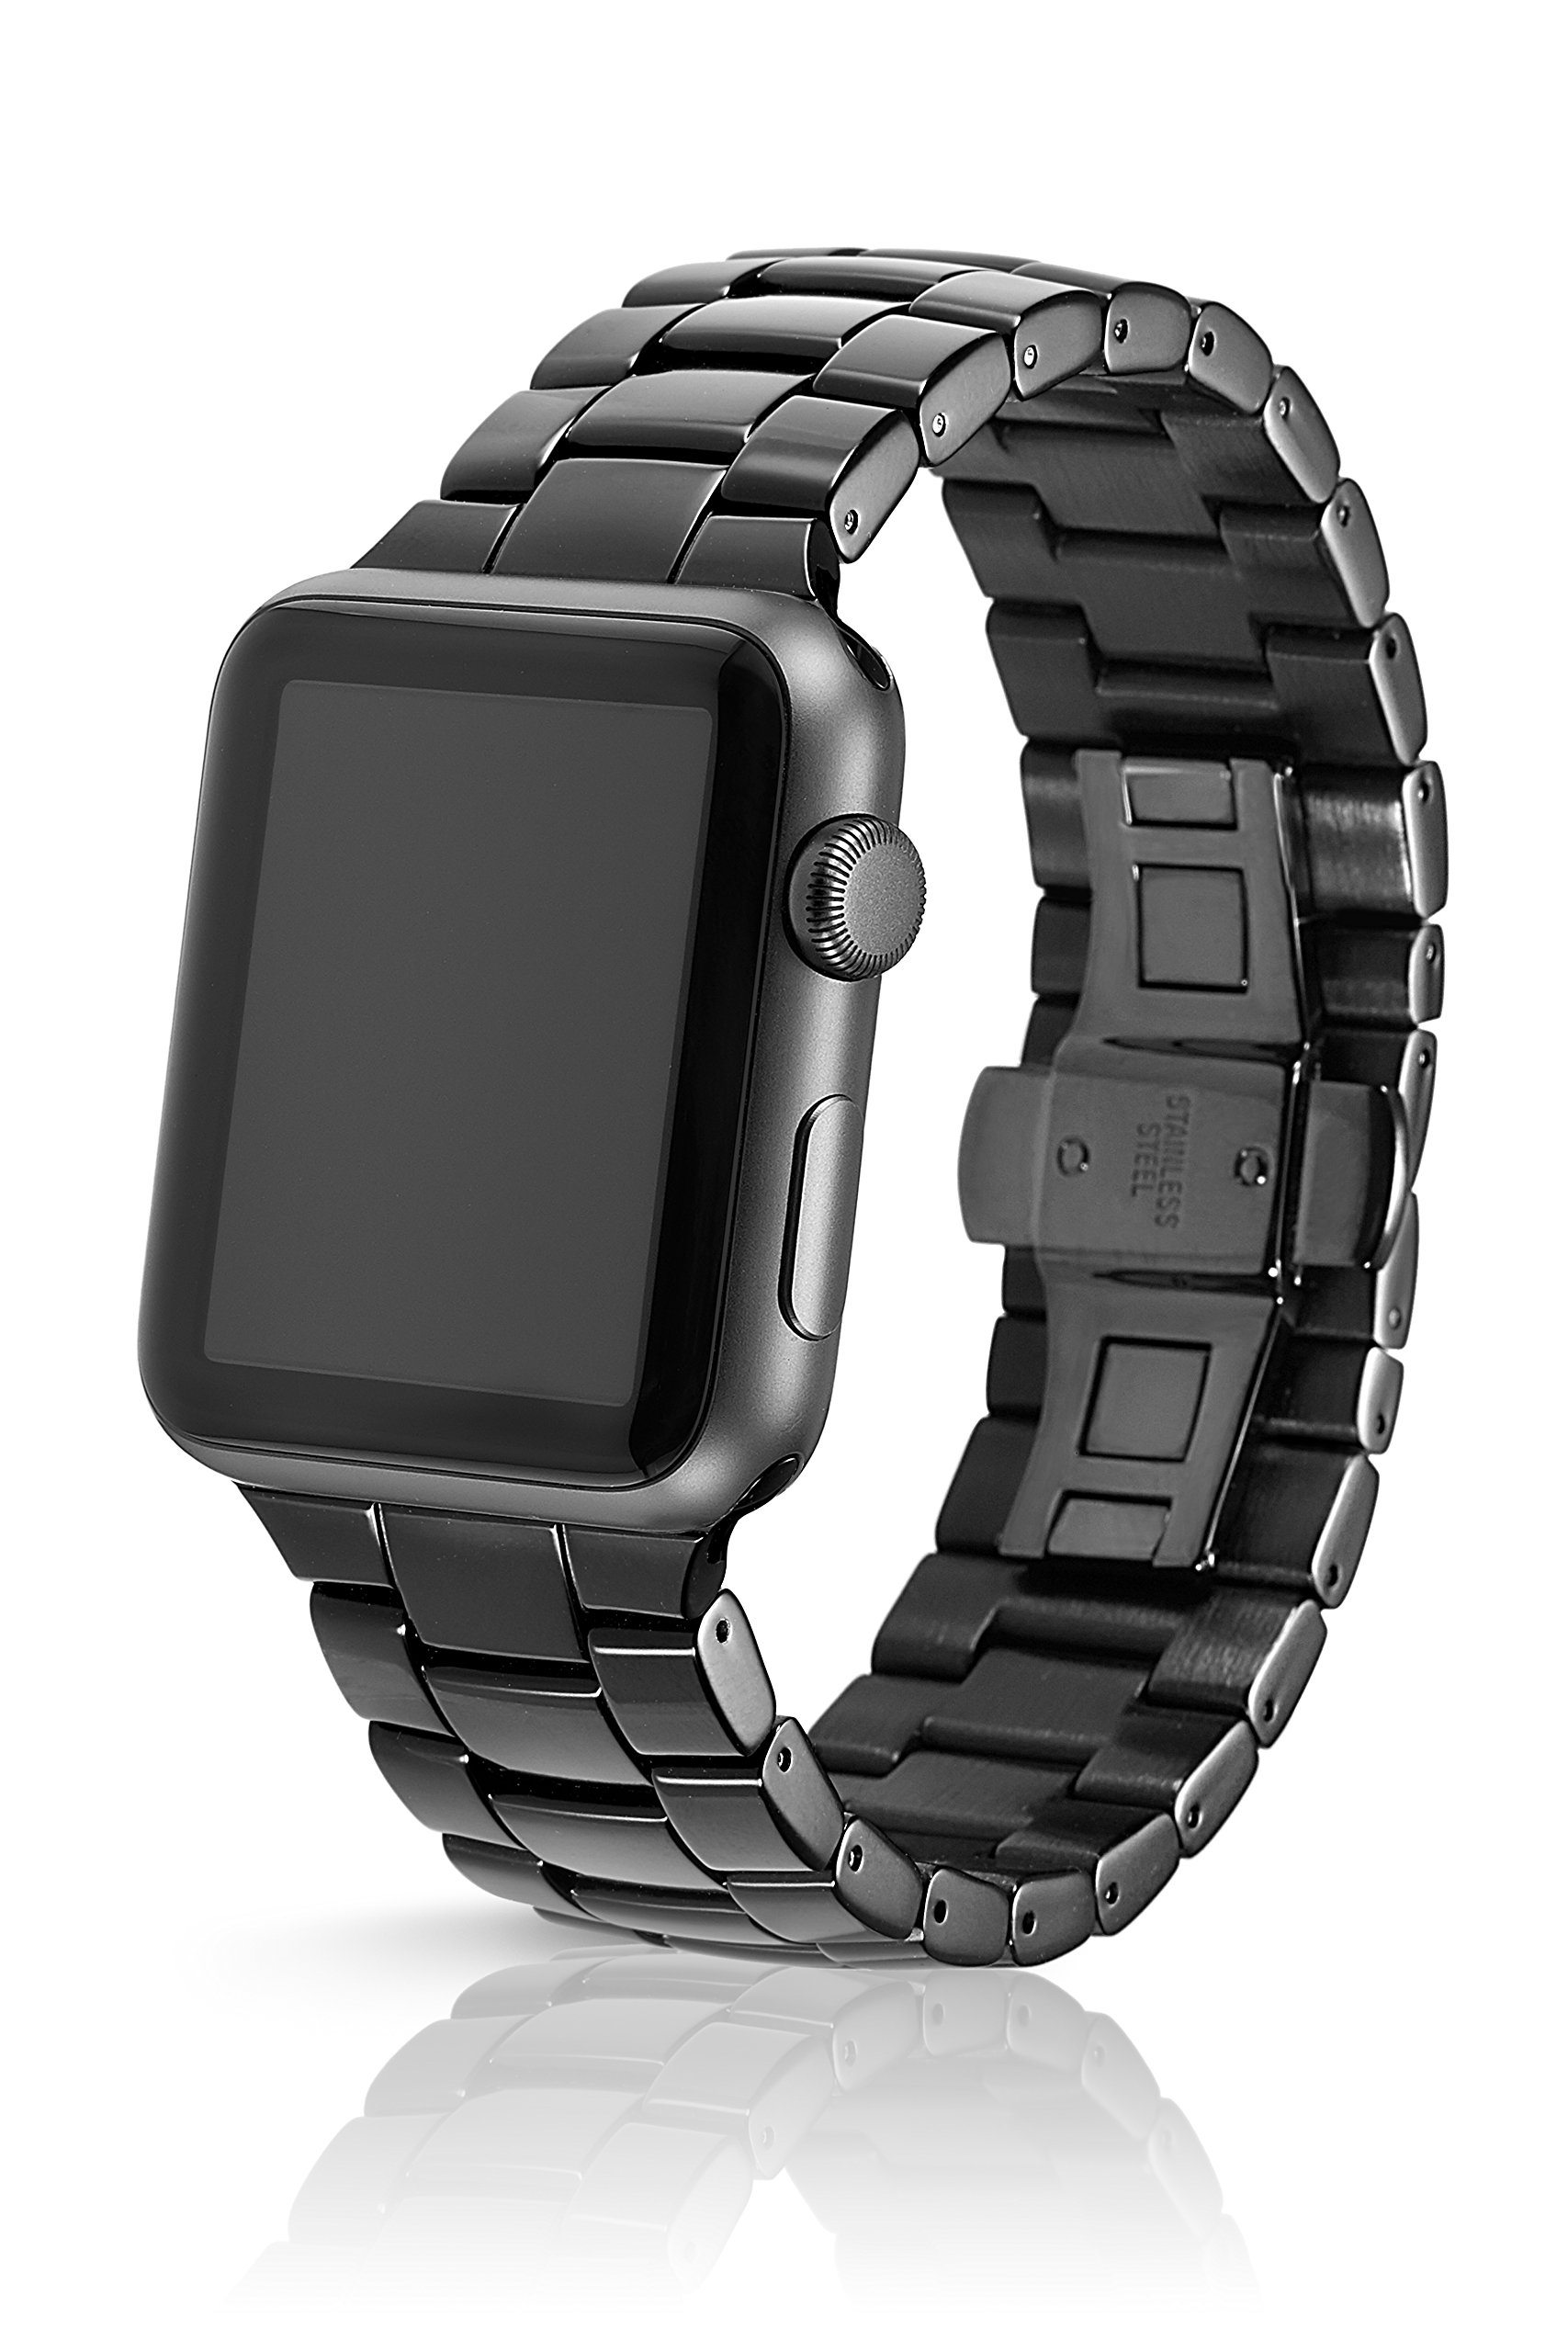 42/44mm JUUK Obsidian Velo Premium Watch Band Made for The Apple Watch, Using Aircraft Grade, Hard Anodized 6000 Series Aluminum with a Solid Stainless Steel Butterfly deployant Buckle (Polished)